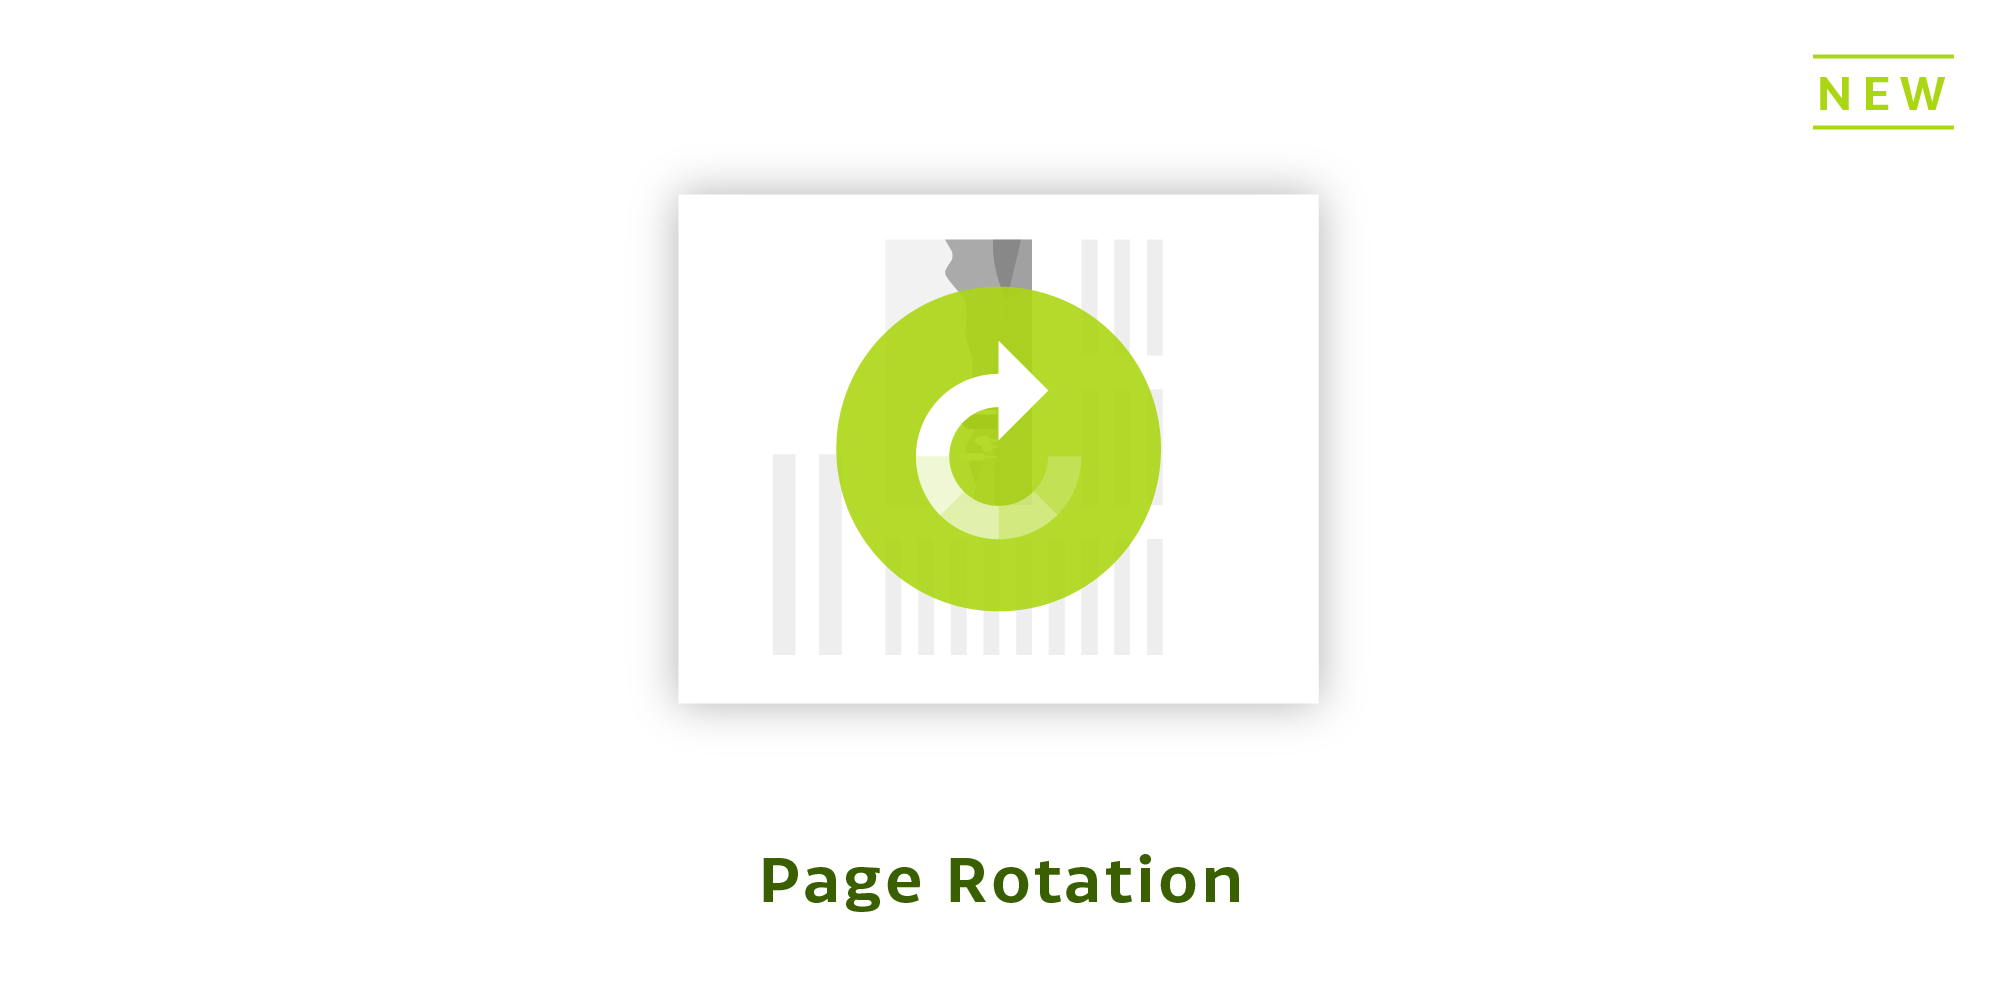 Page Rotation